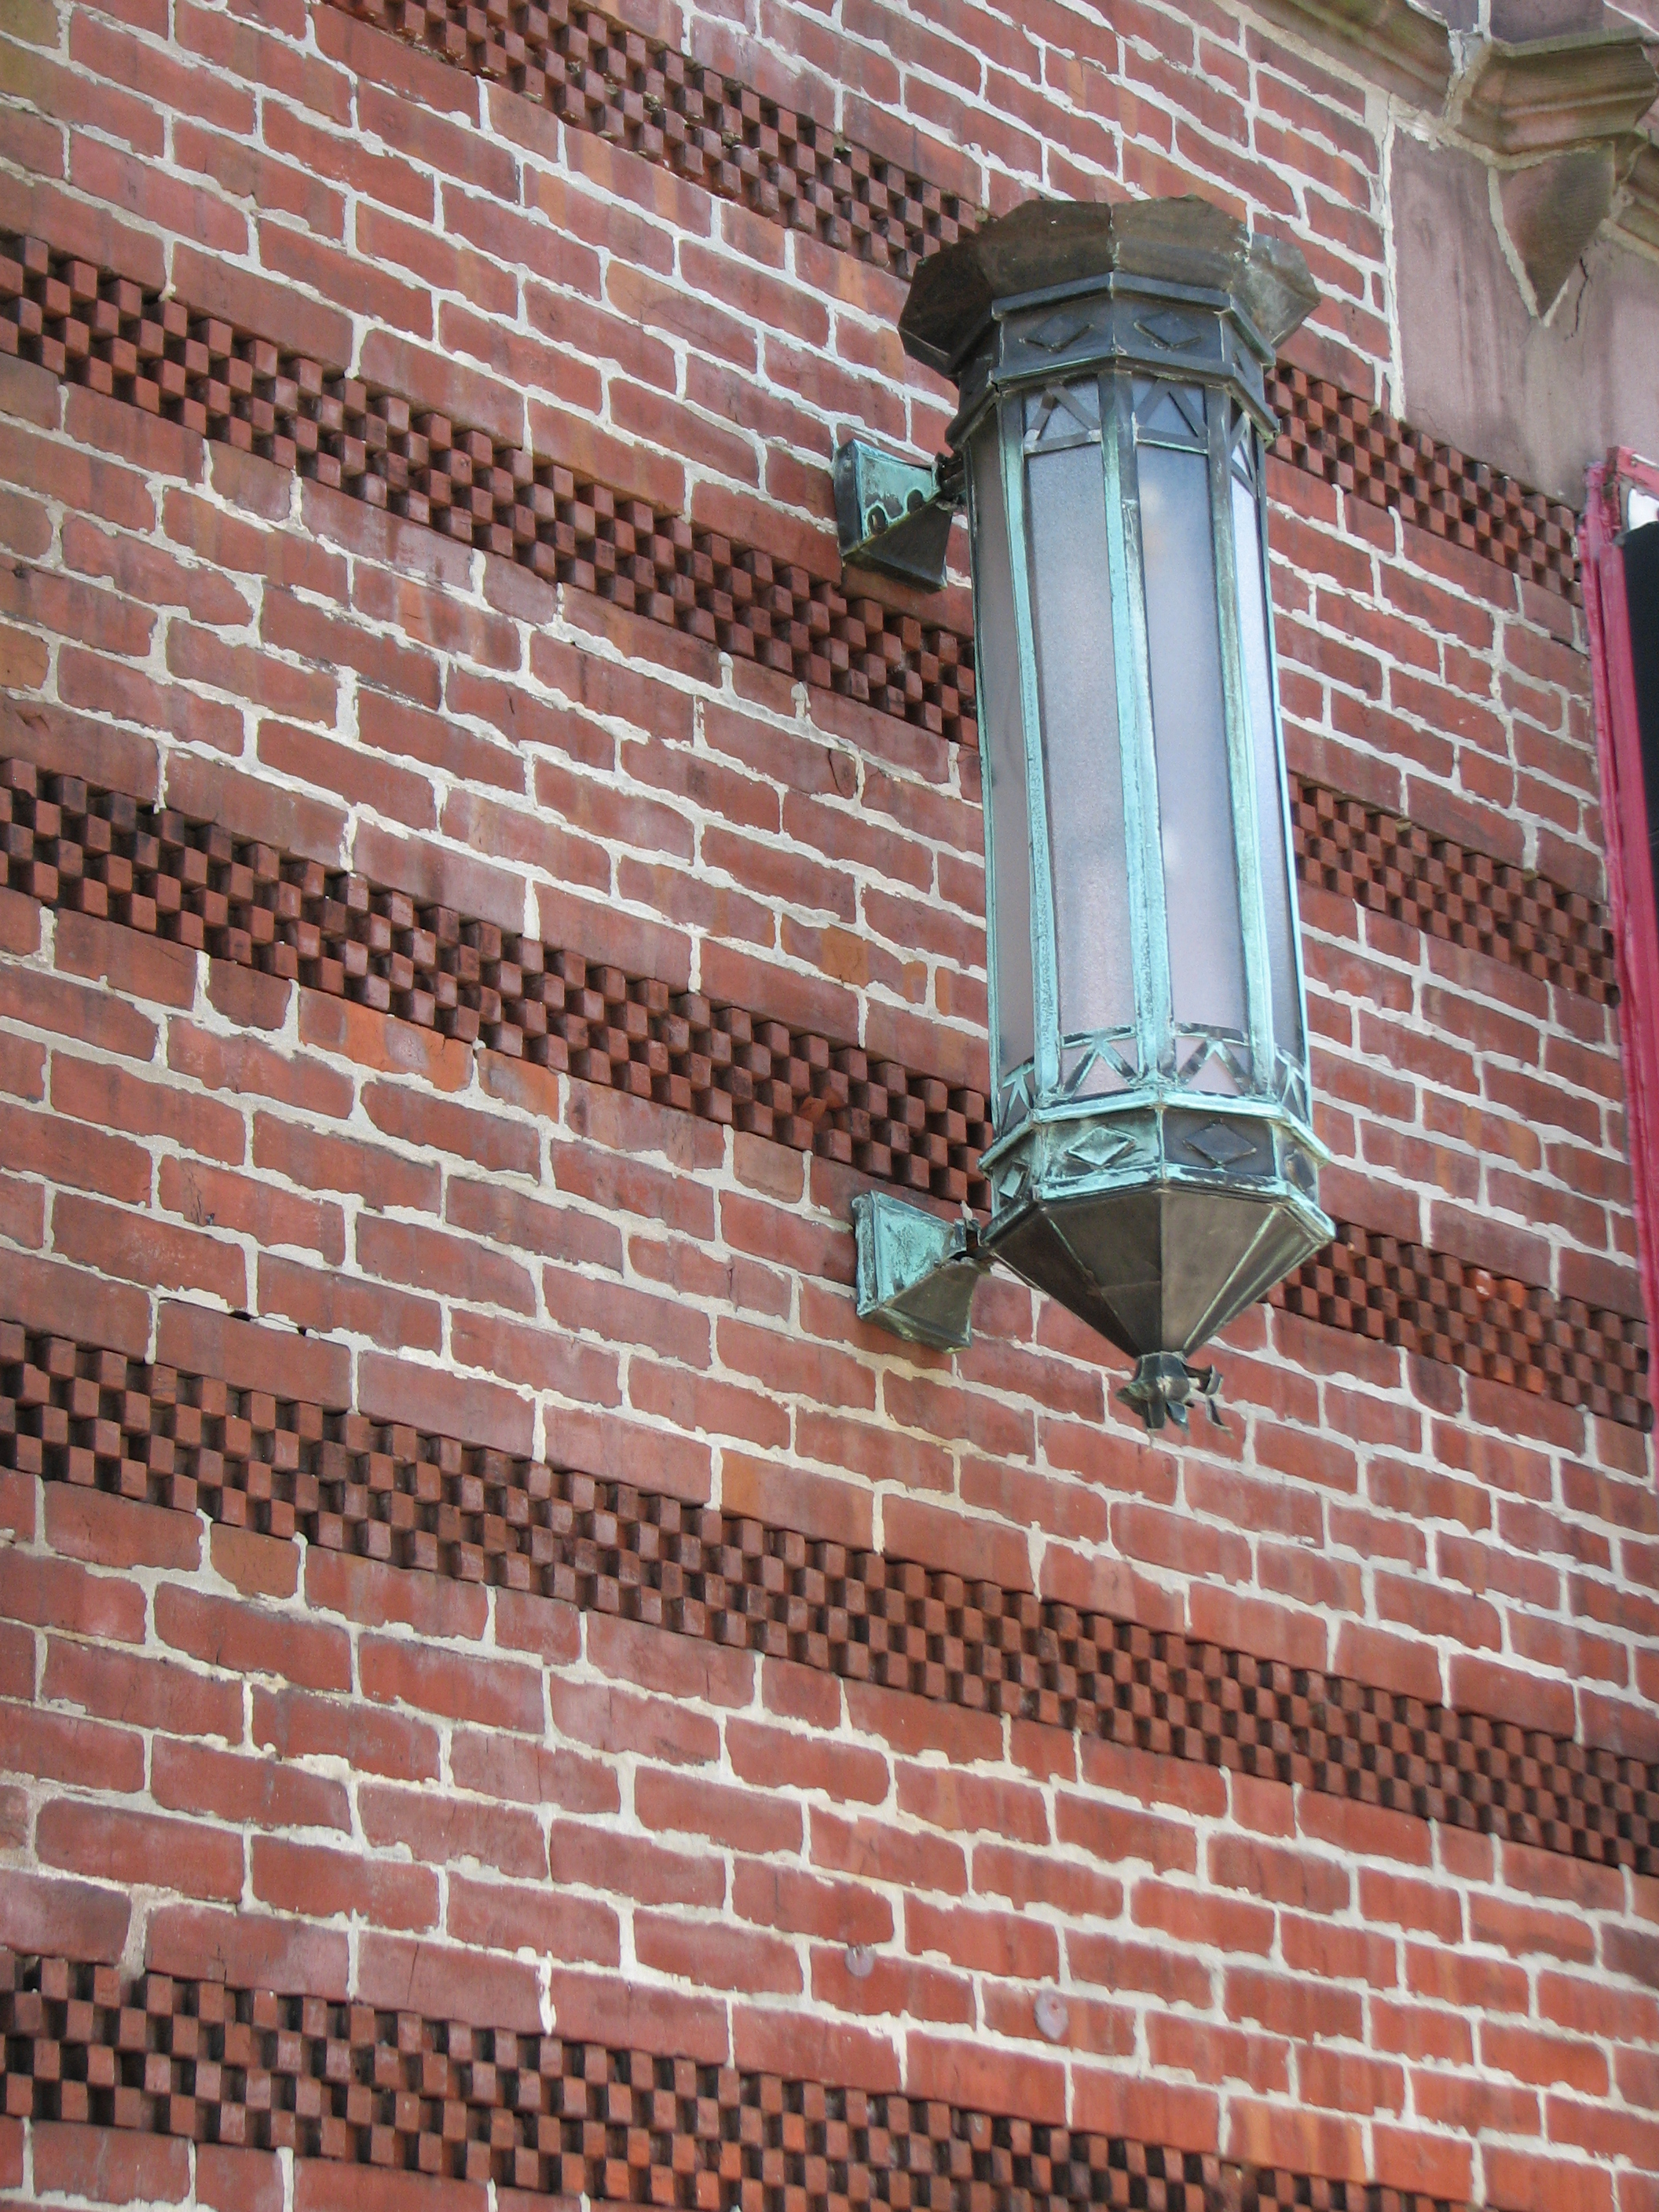 Original lamp fixtures still hang on the decorative brick on either side of the building's entrance.